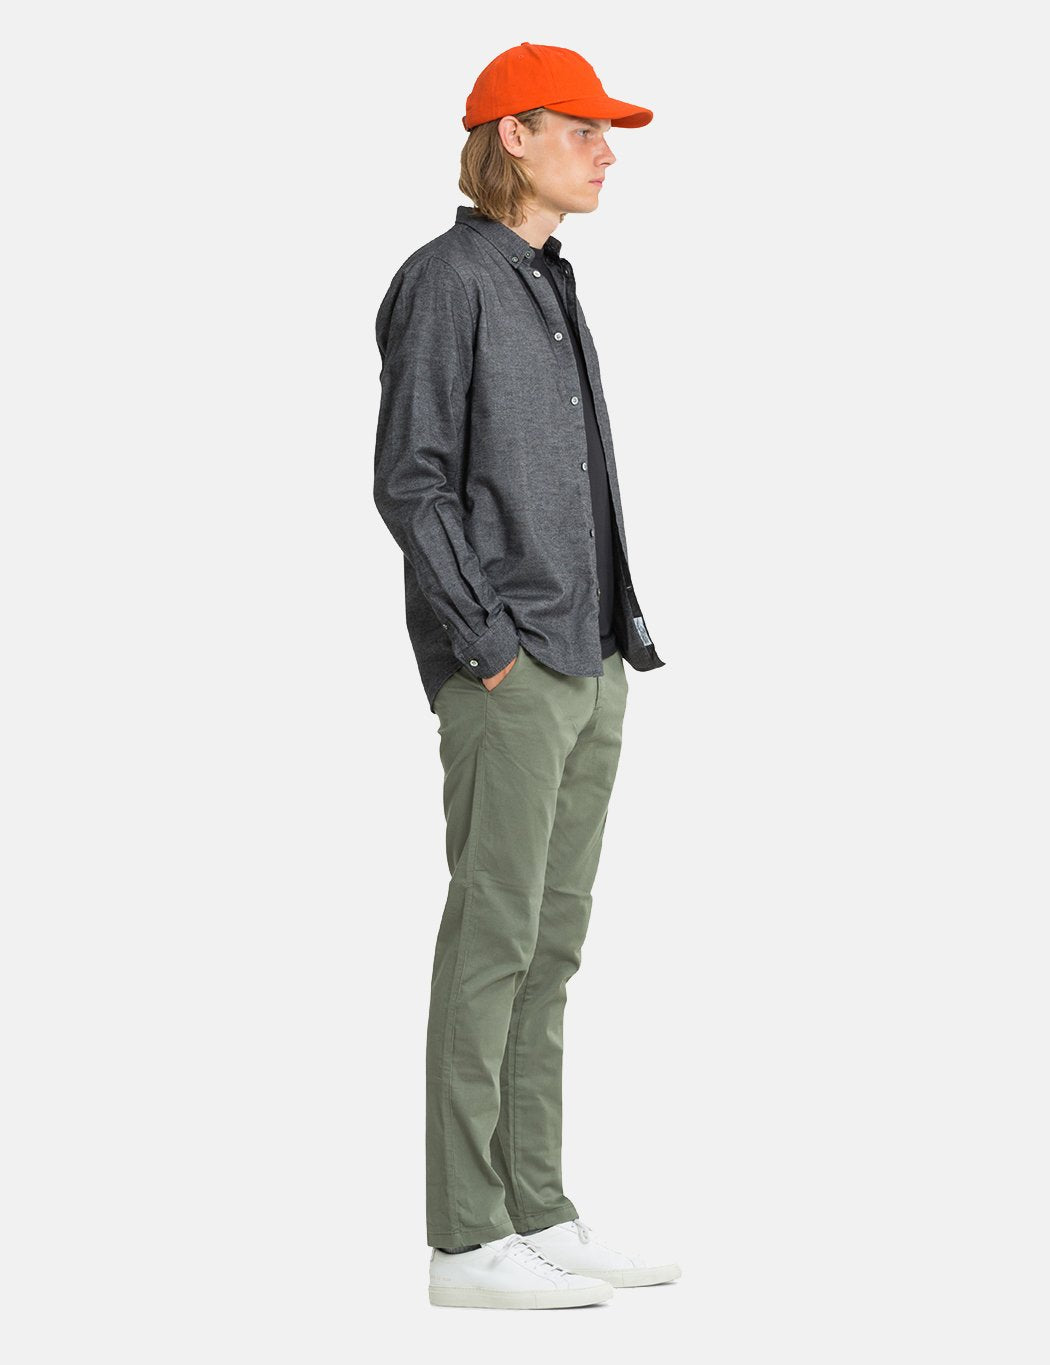 061a9d62097 Norse Projects Anton Brushed Flannel Shirt - Magnet Grey | URBAN ...